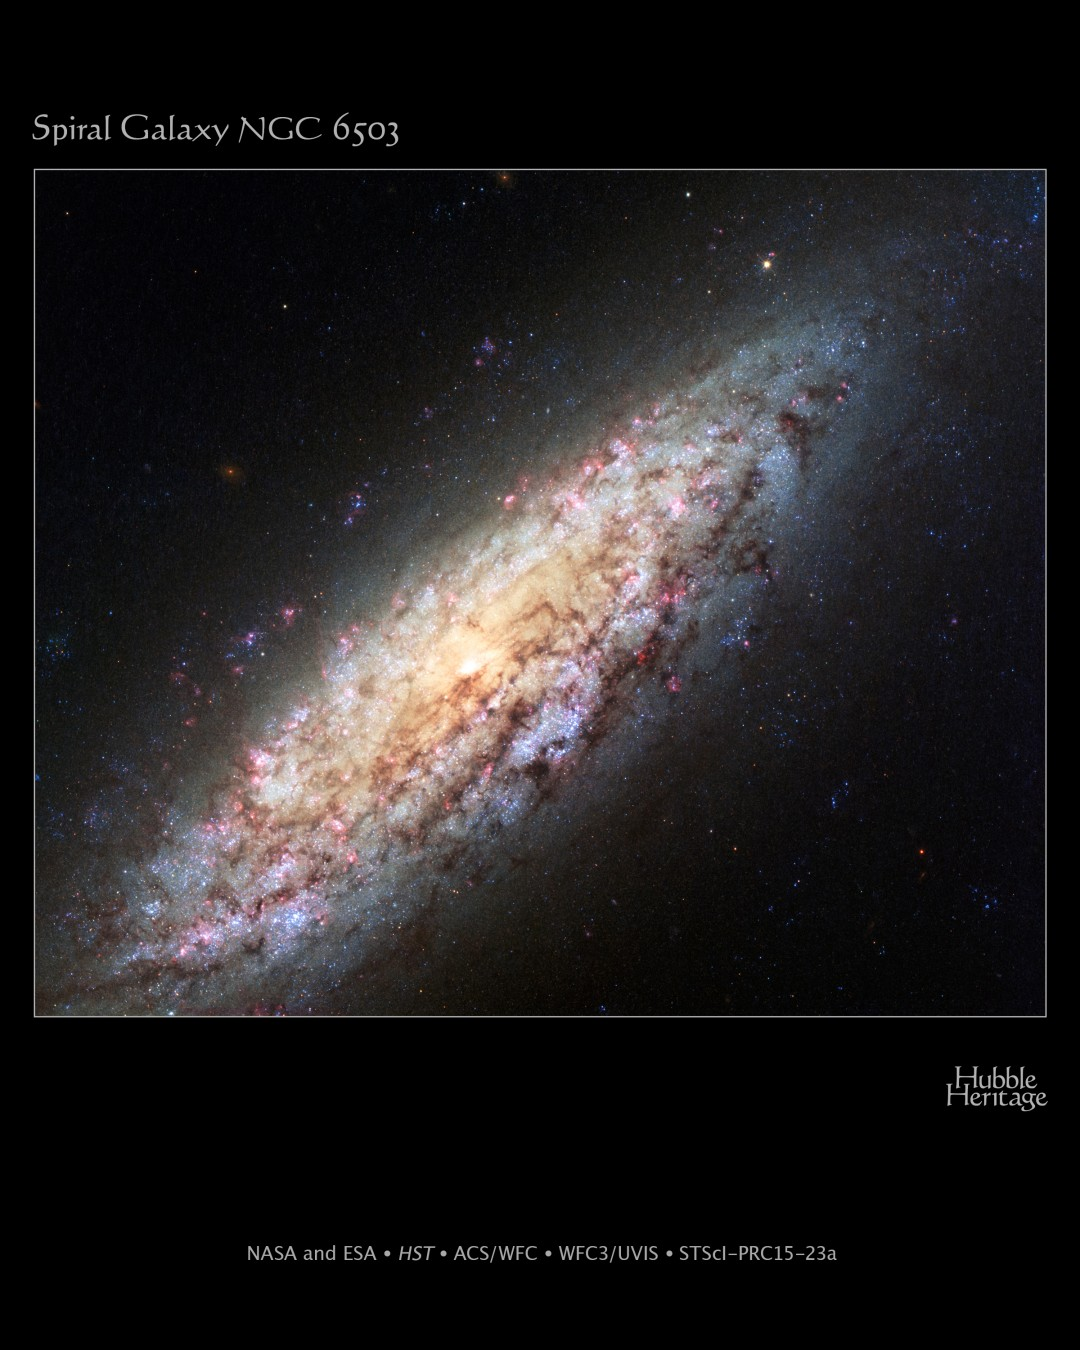 http://hubblesite.org/newscenter/archive/releases/2015/23/image/